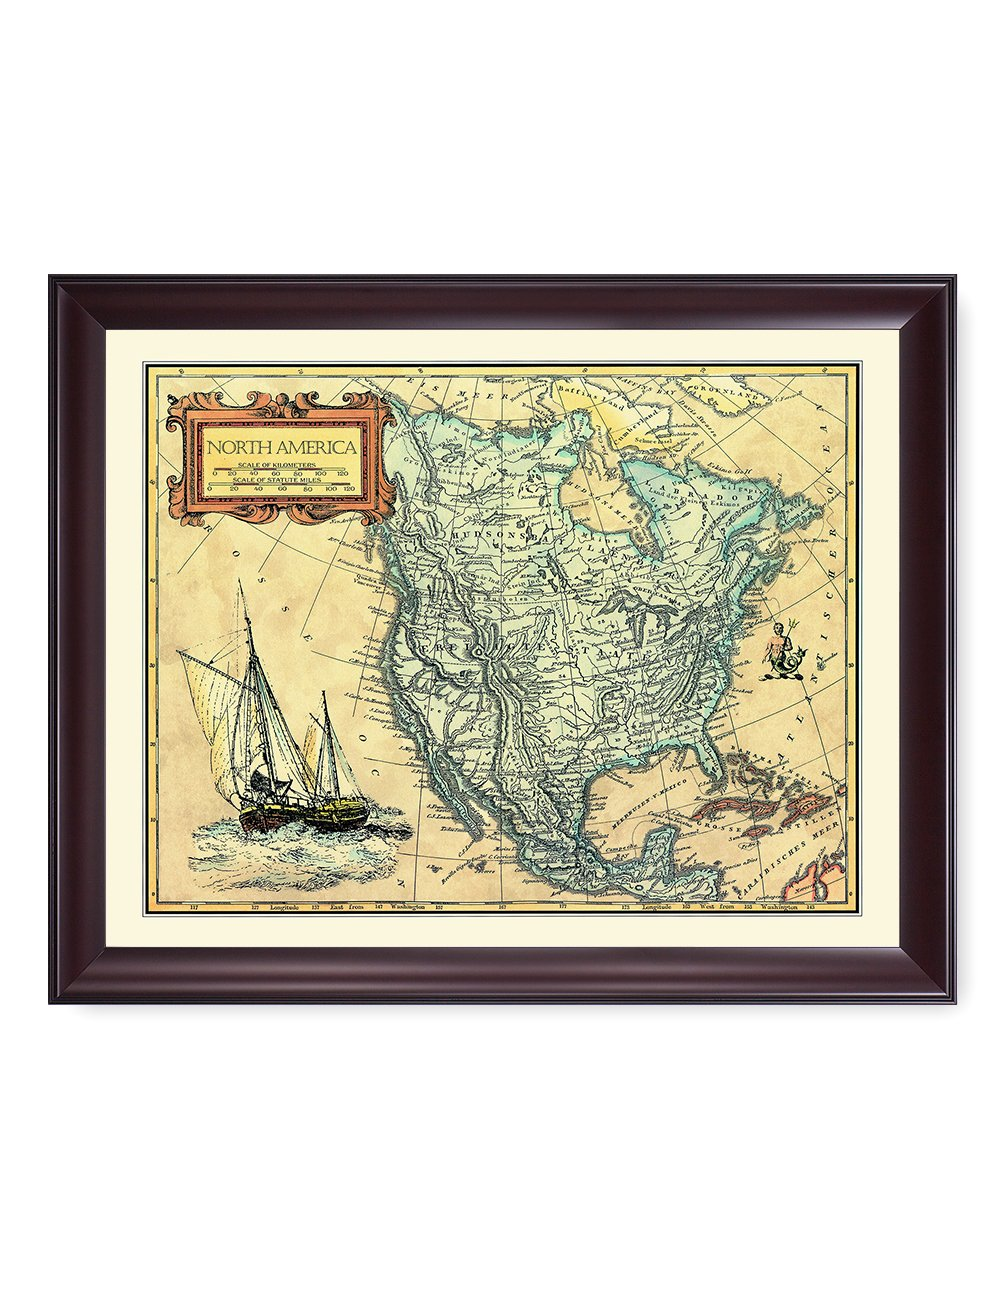 DecorArts- North America Map, Ancient Map Giclee Print wall art for Home Decor and Wall Decor. Framed size: 34x28''